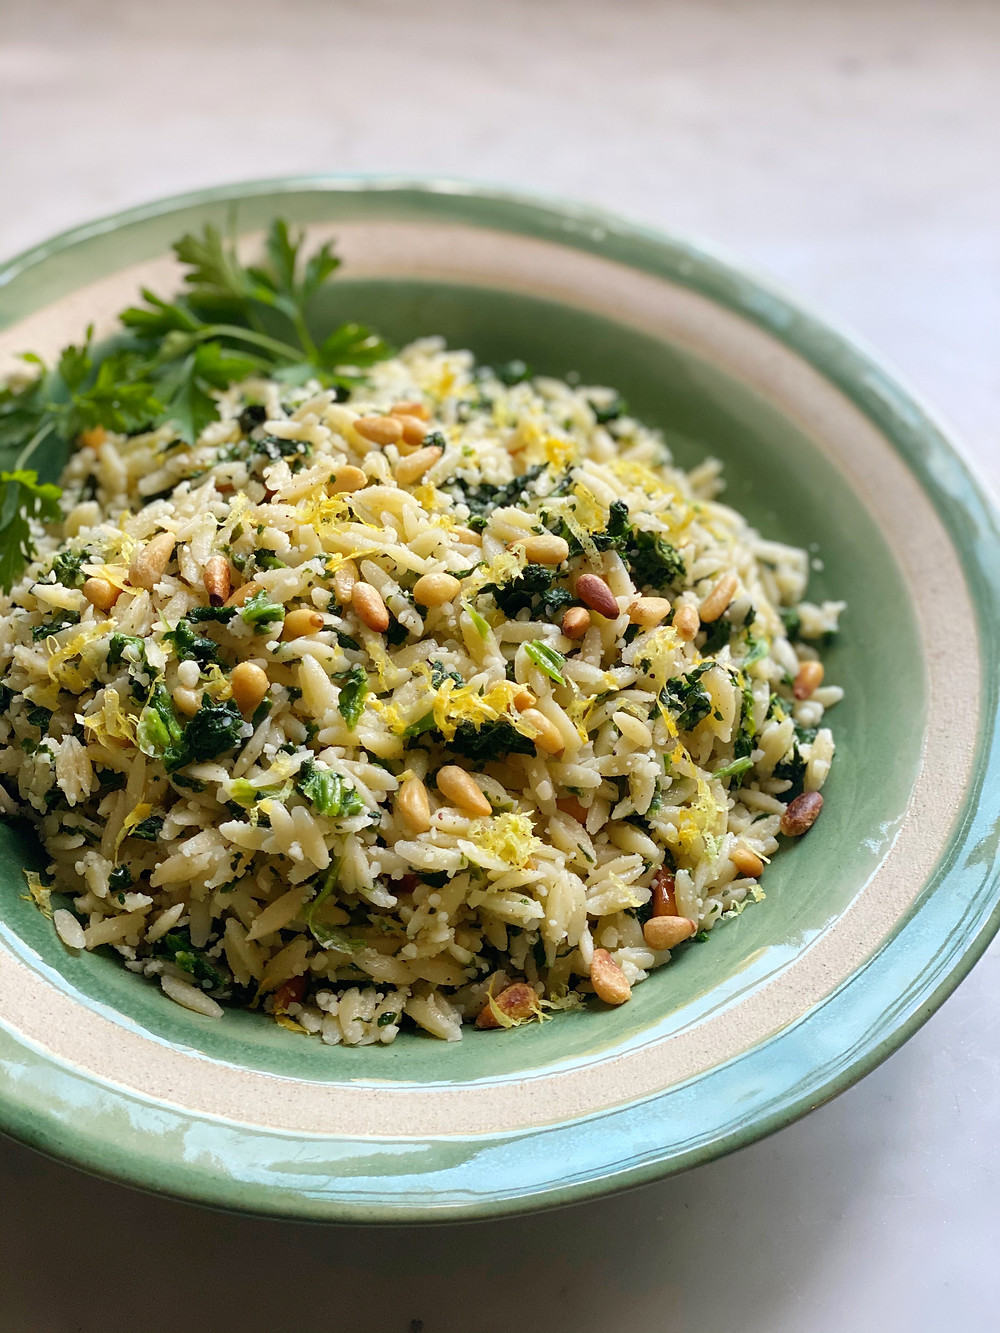 Spinach Orzo with Parmesan & Pignoli